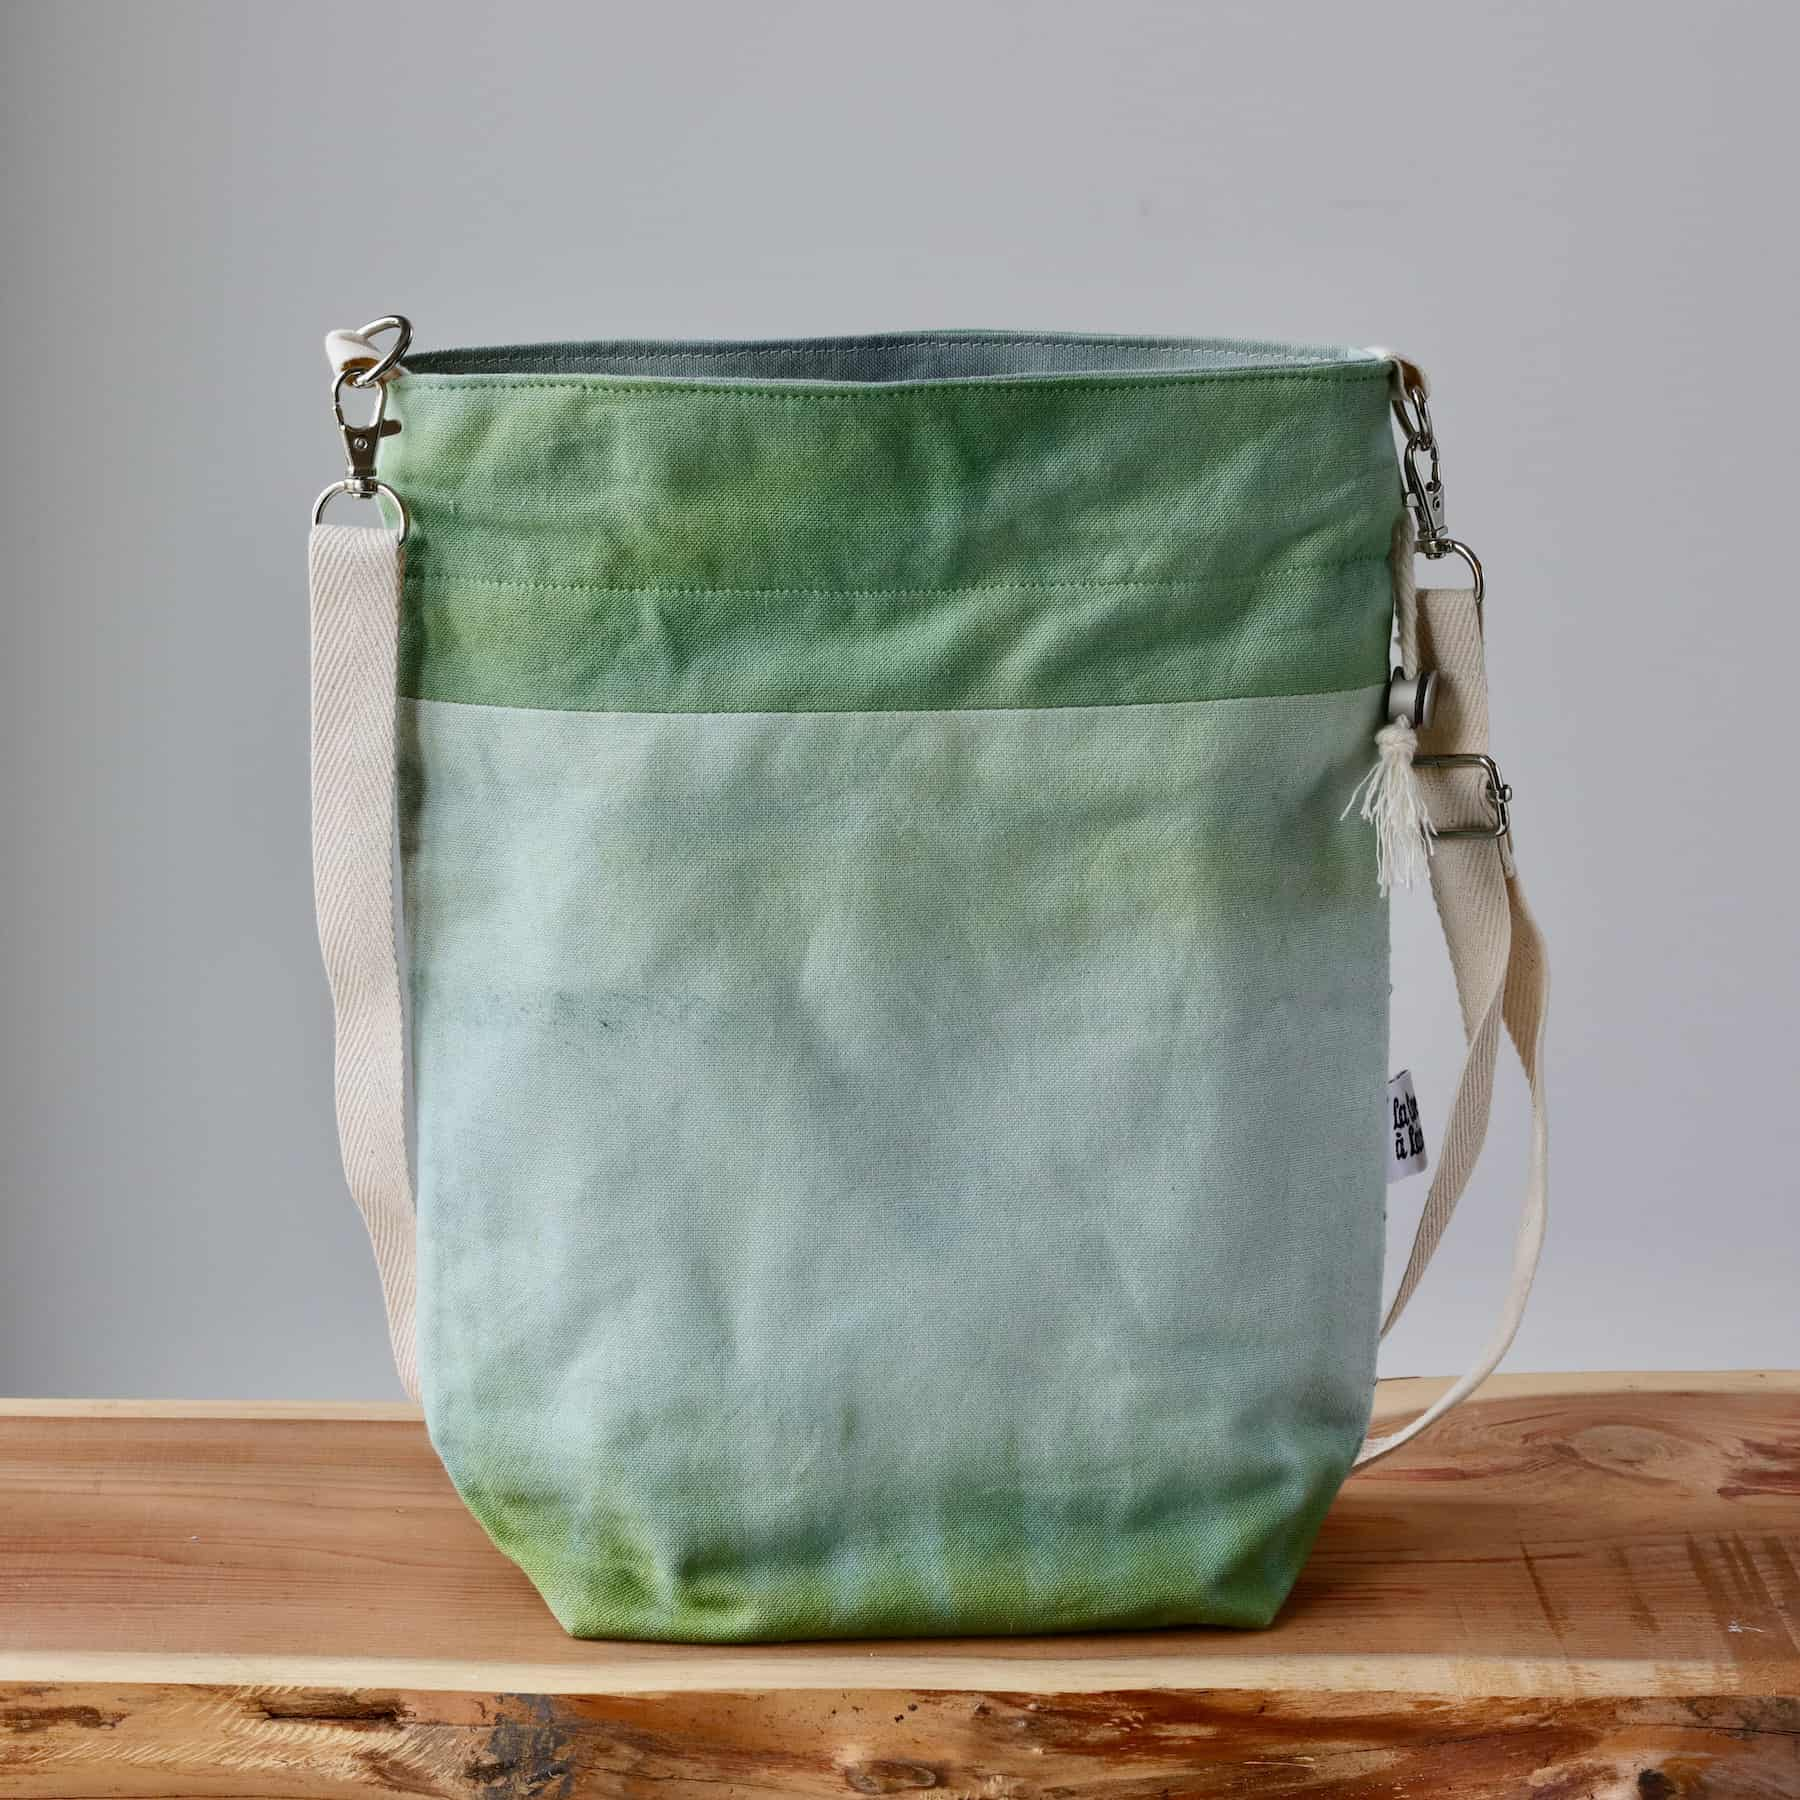 A light green canvas bag with a beige leather strap sits atop a wooden table.